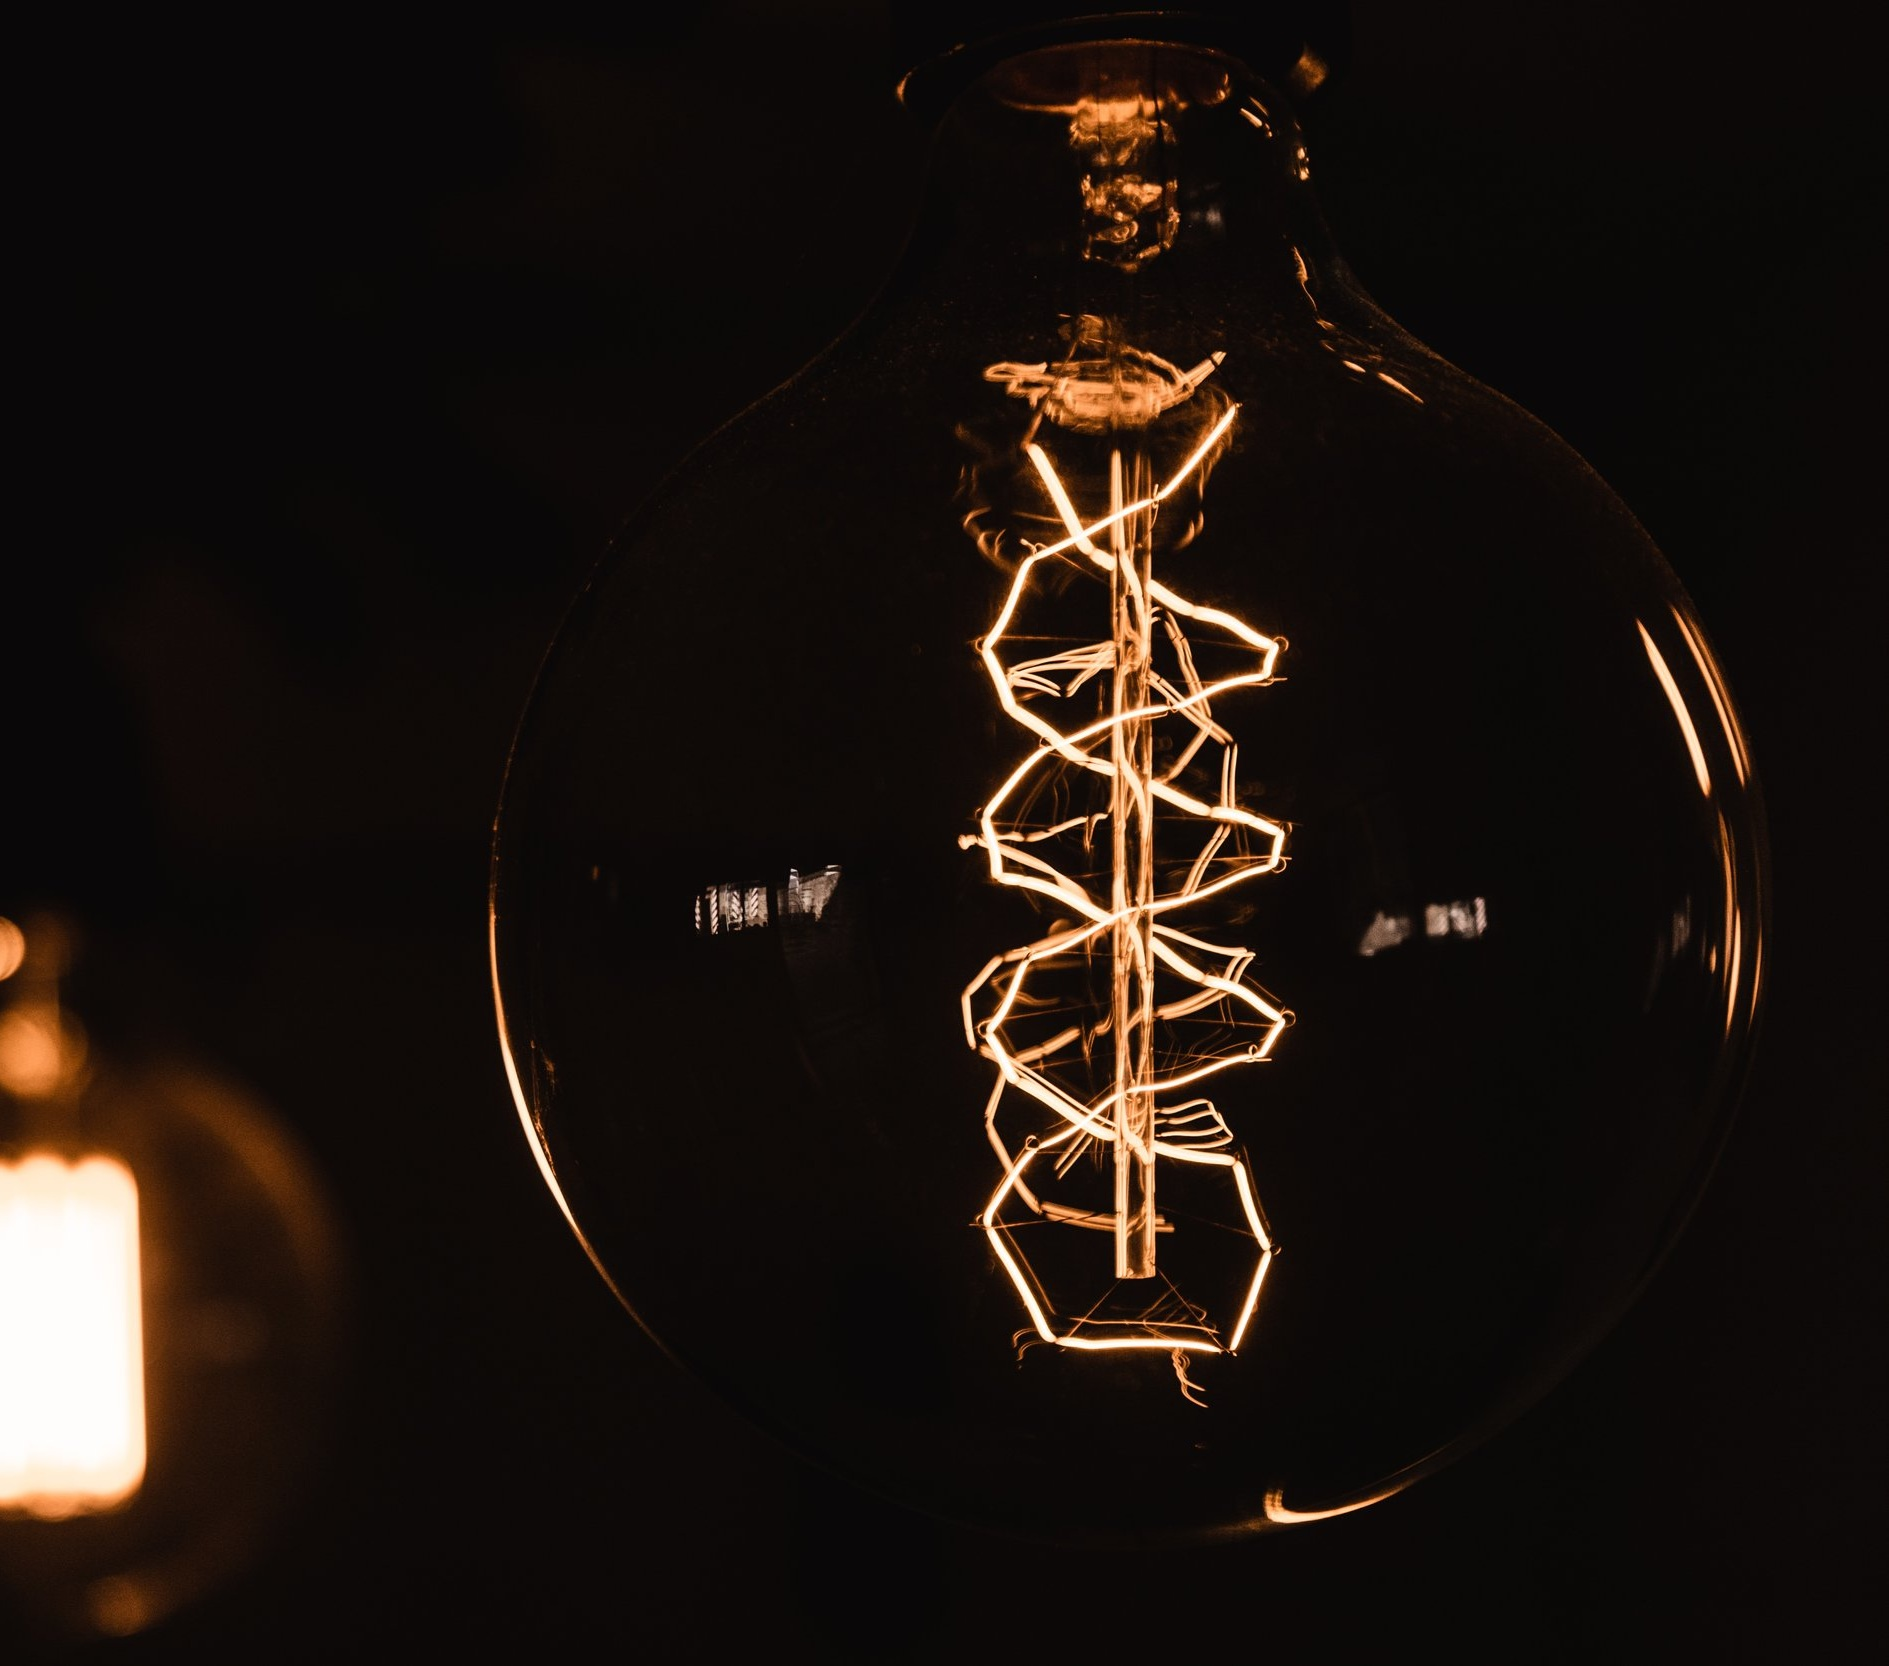 DNA light bulb